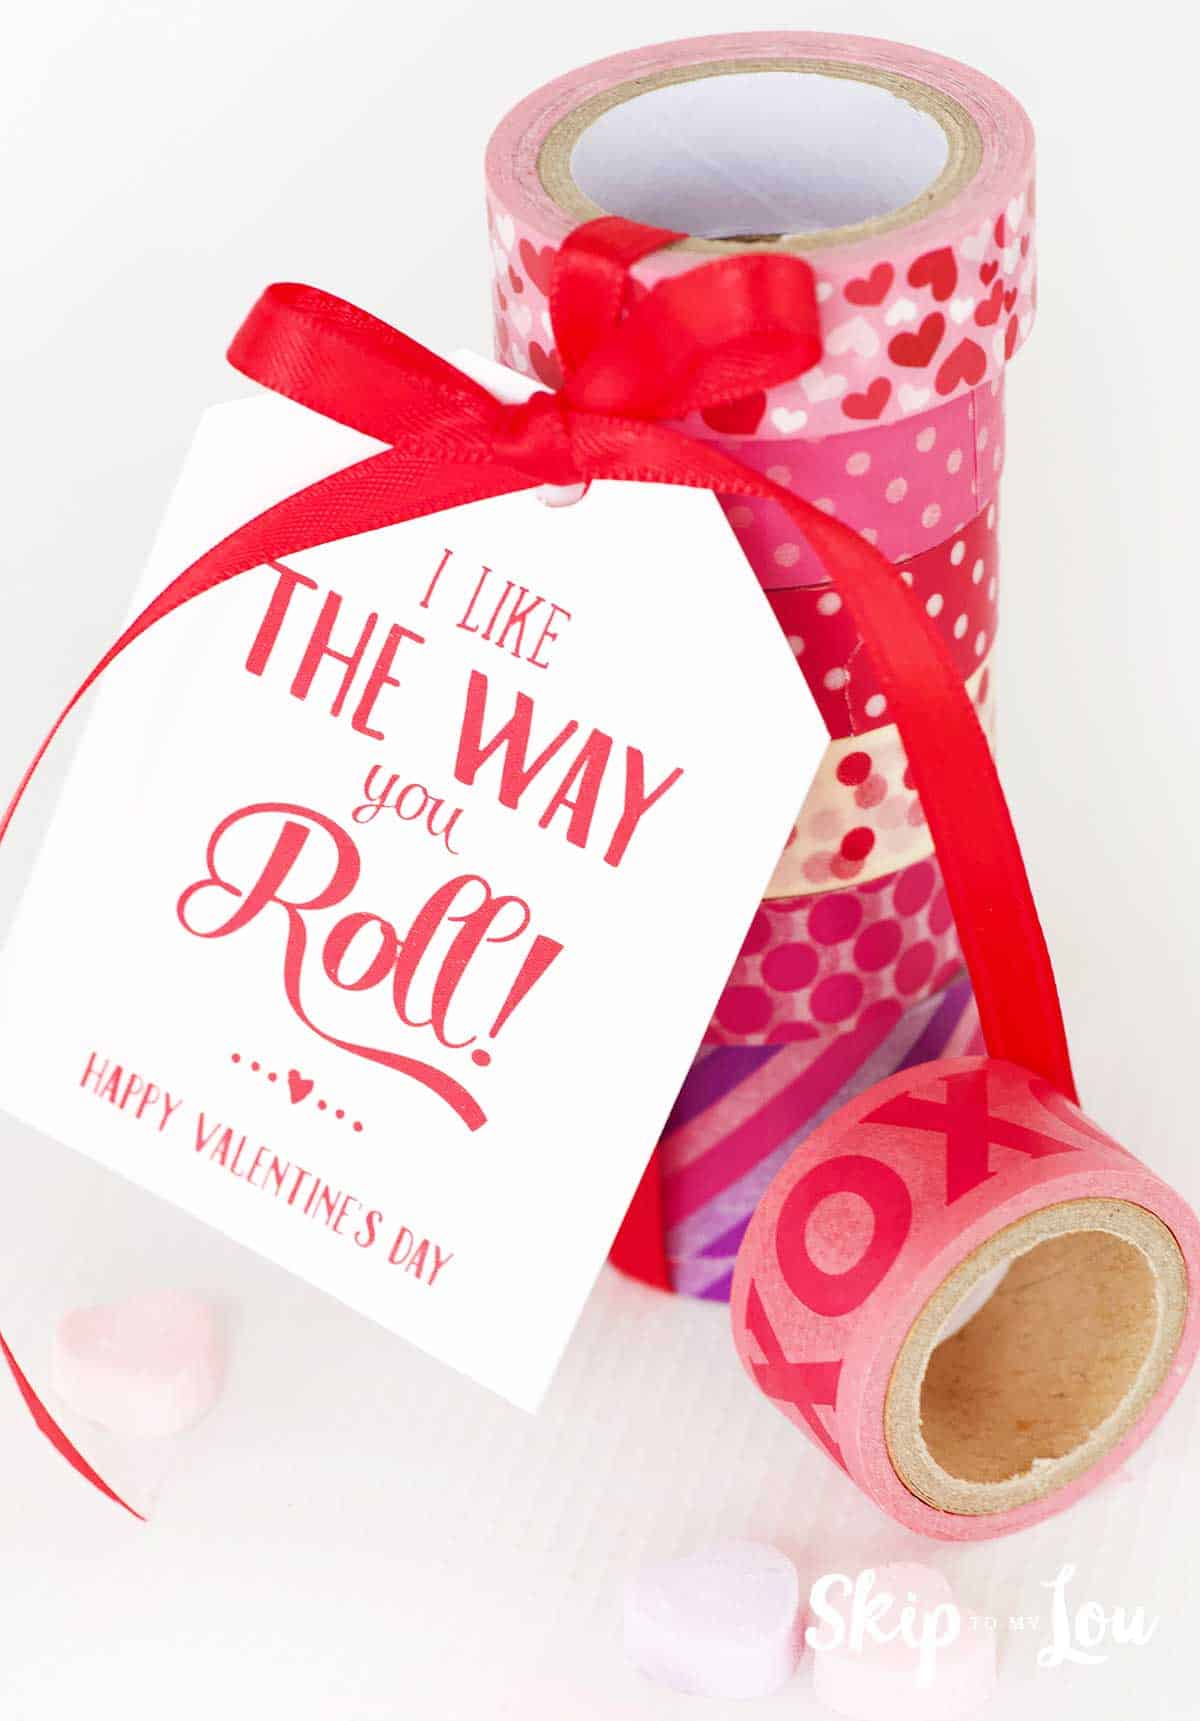 washi tape with tag that says I like the way you roll